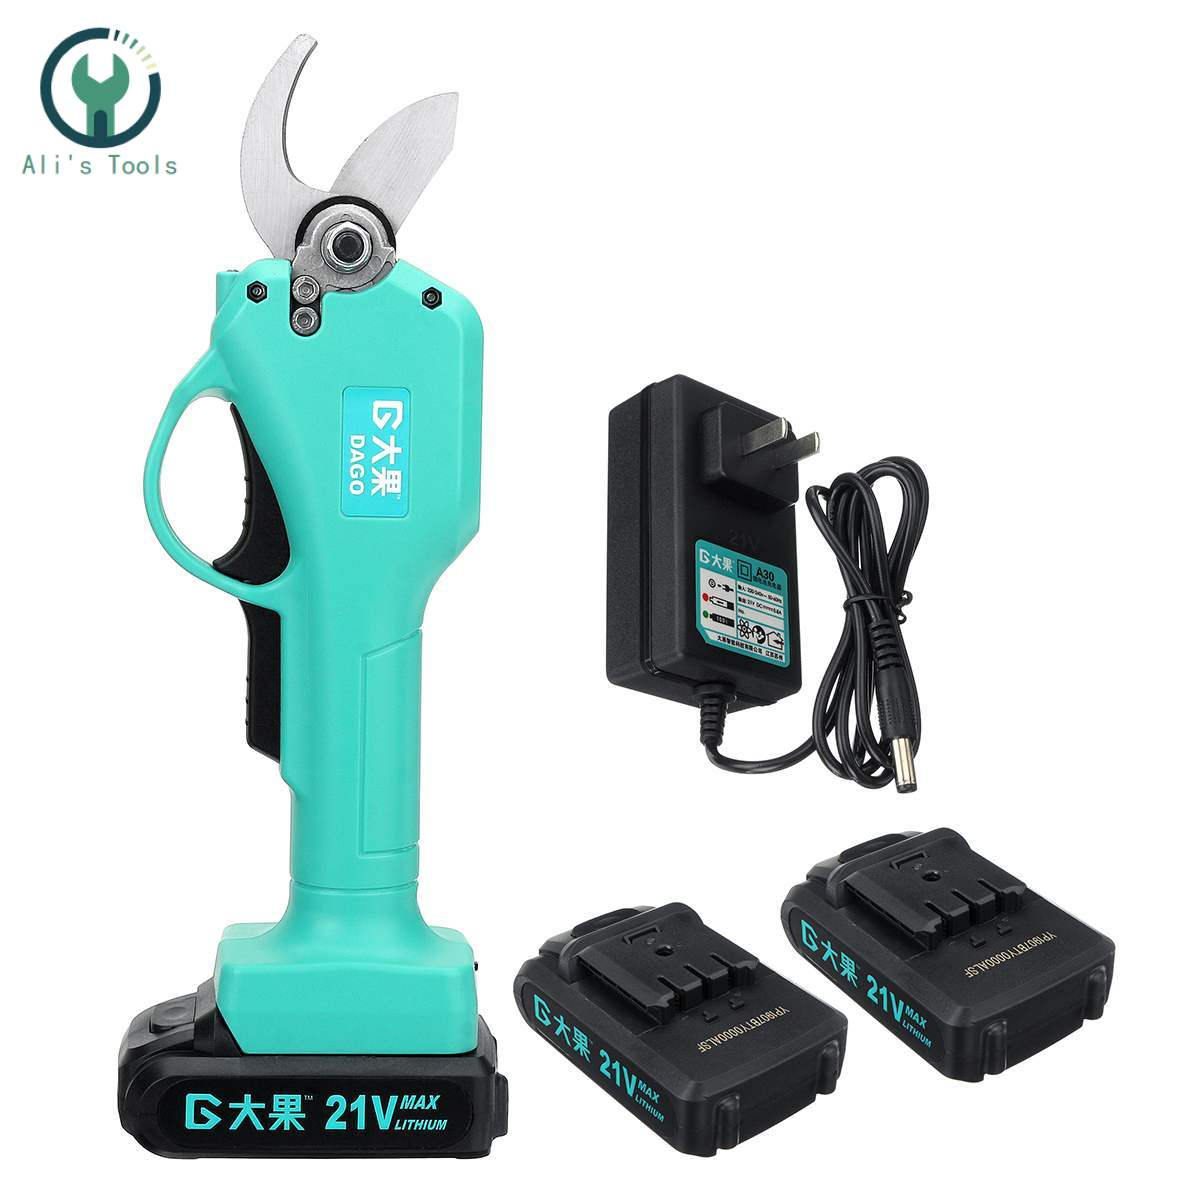 21V Wireless Electric Rechargeable Scissors Pruning Shears Tree Garden Tool Branches Pruning Tools W/1 Or 2 Li-ion Battery